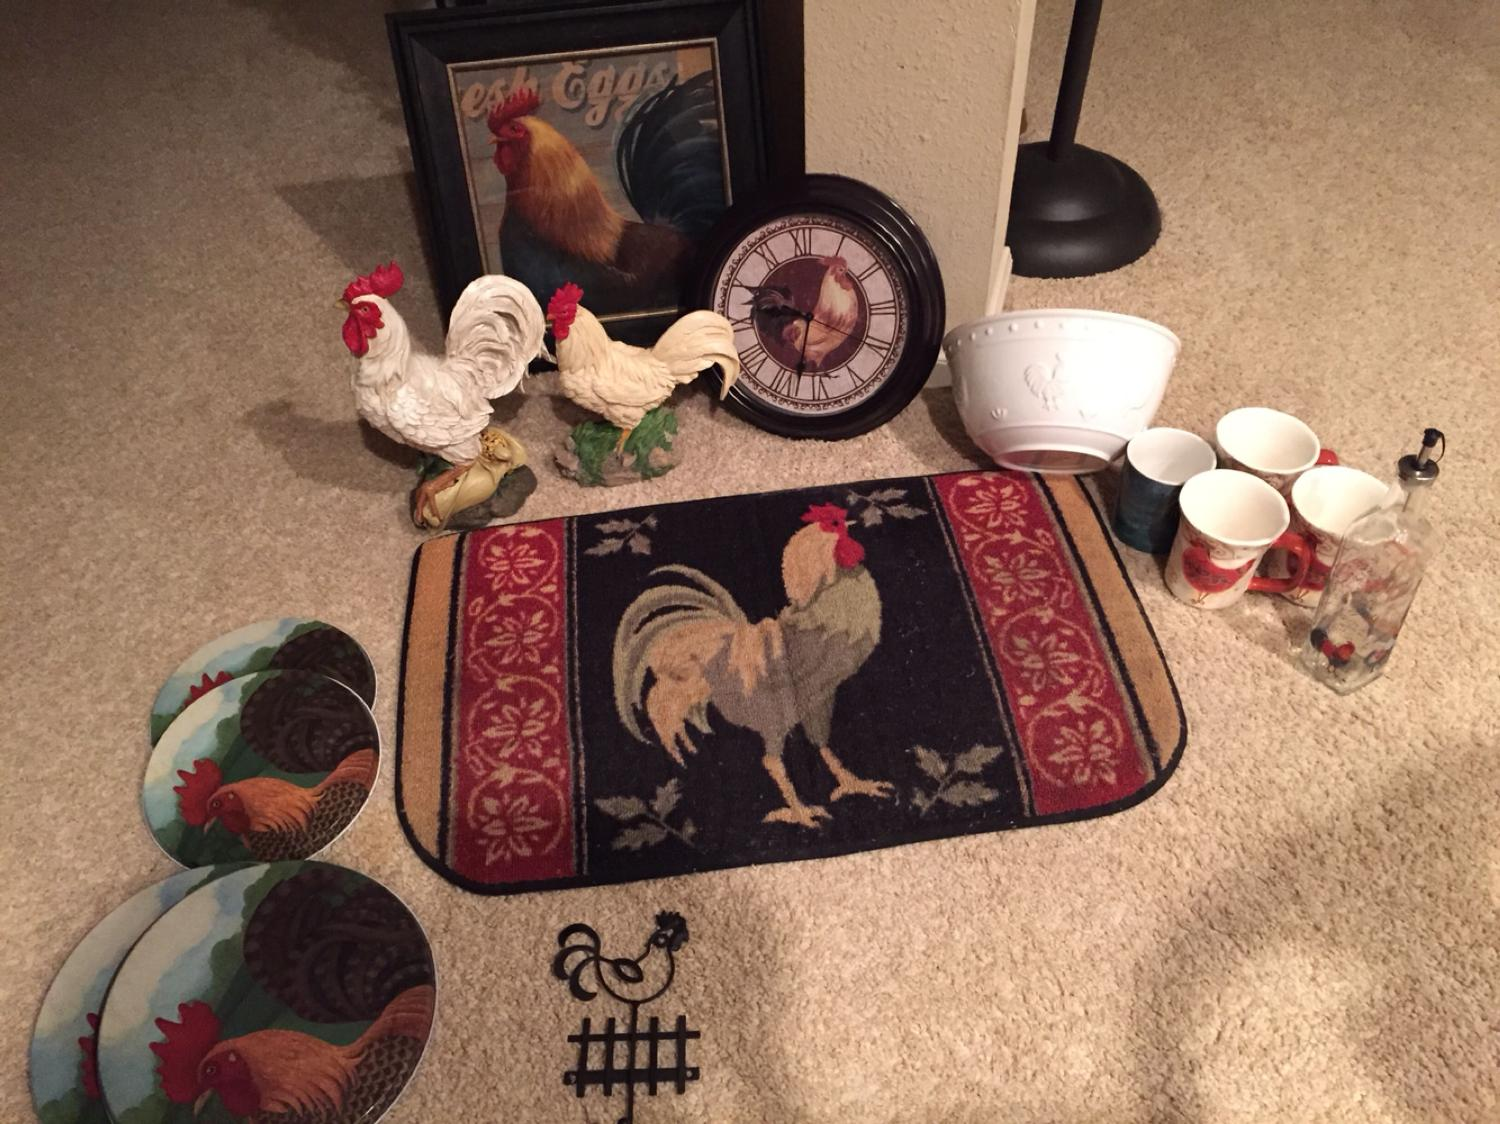 Find More Rooster Decorations And Kitchen Items For Sale For Sale At